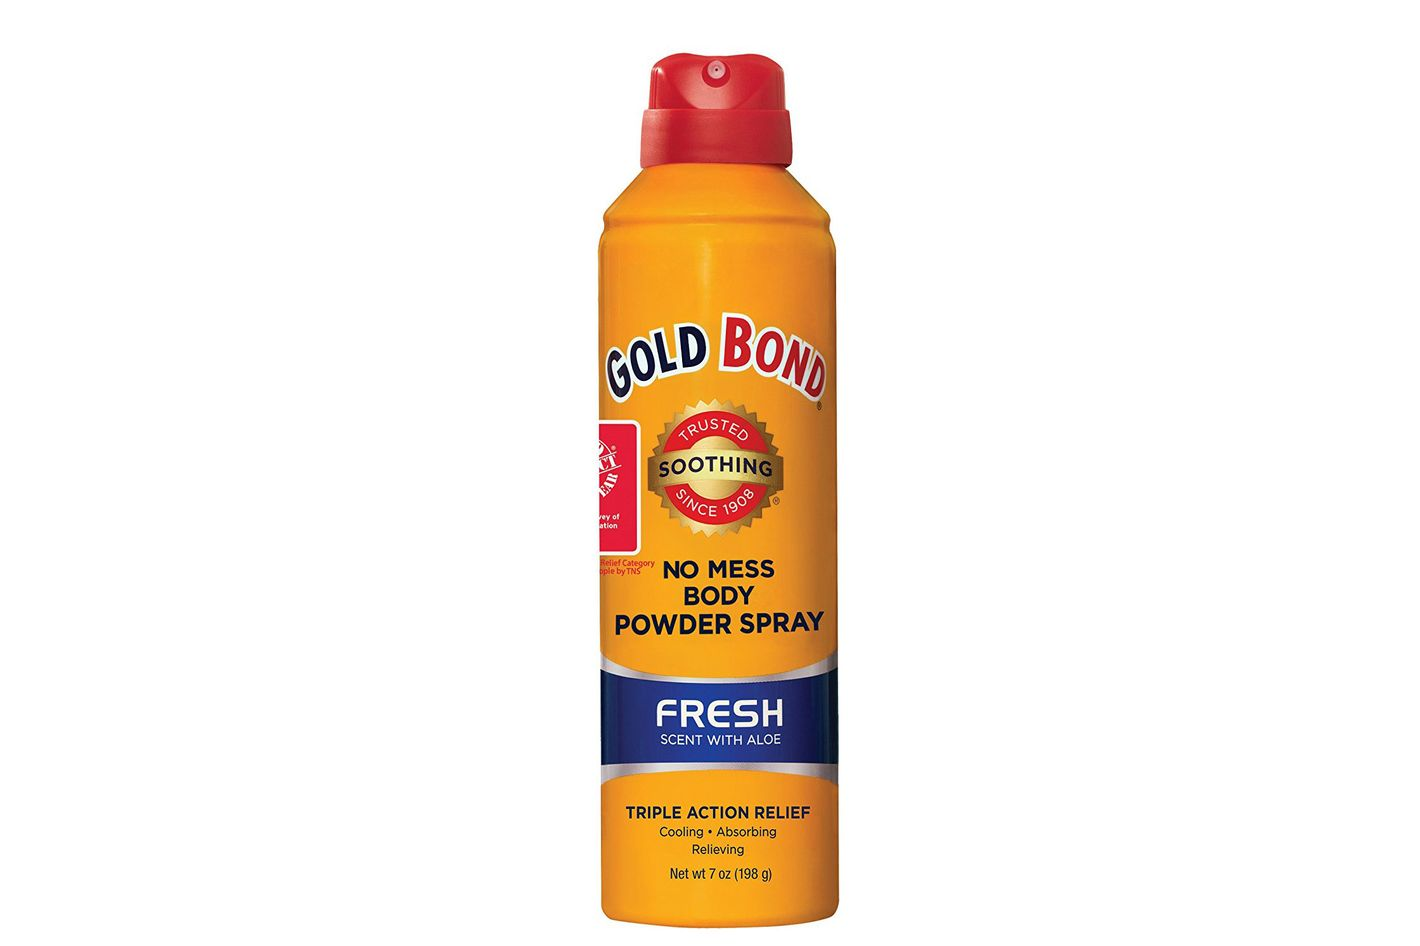 Gold Bond No-Mess Powder Spray